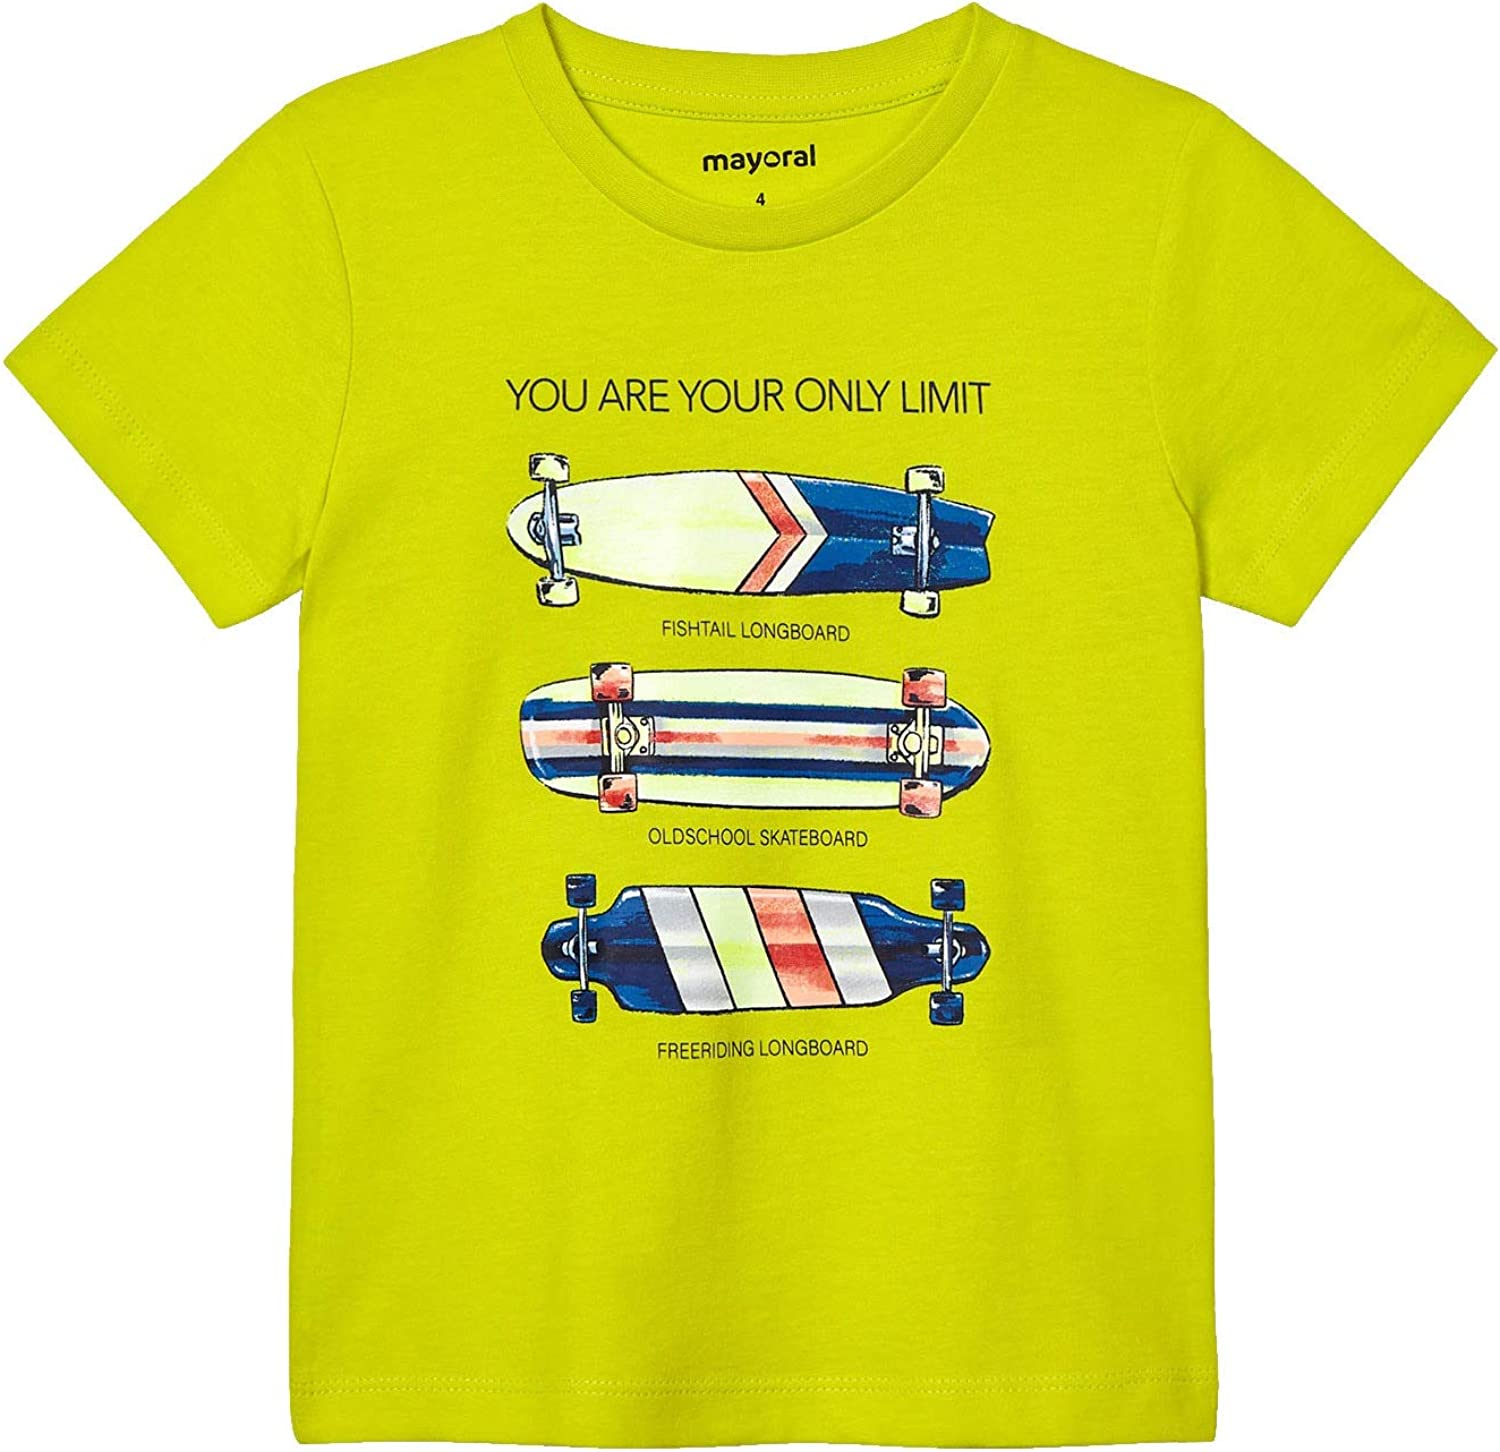 Mayoral - Skateboards s/s t-Shirt for Boys - 3044, Green